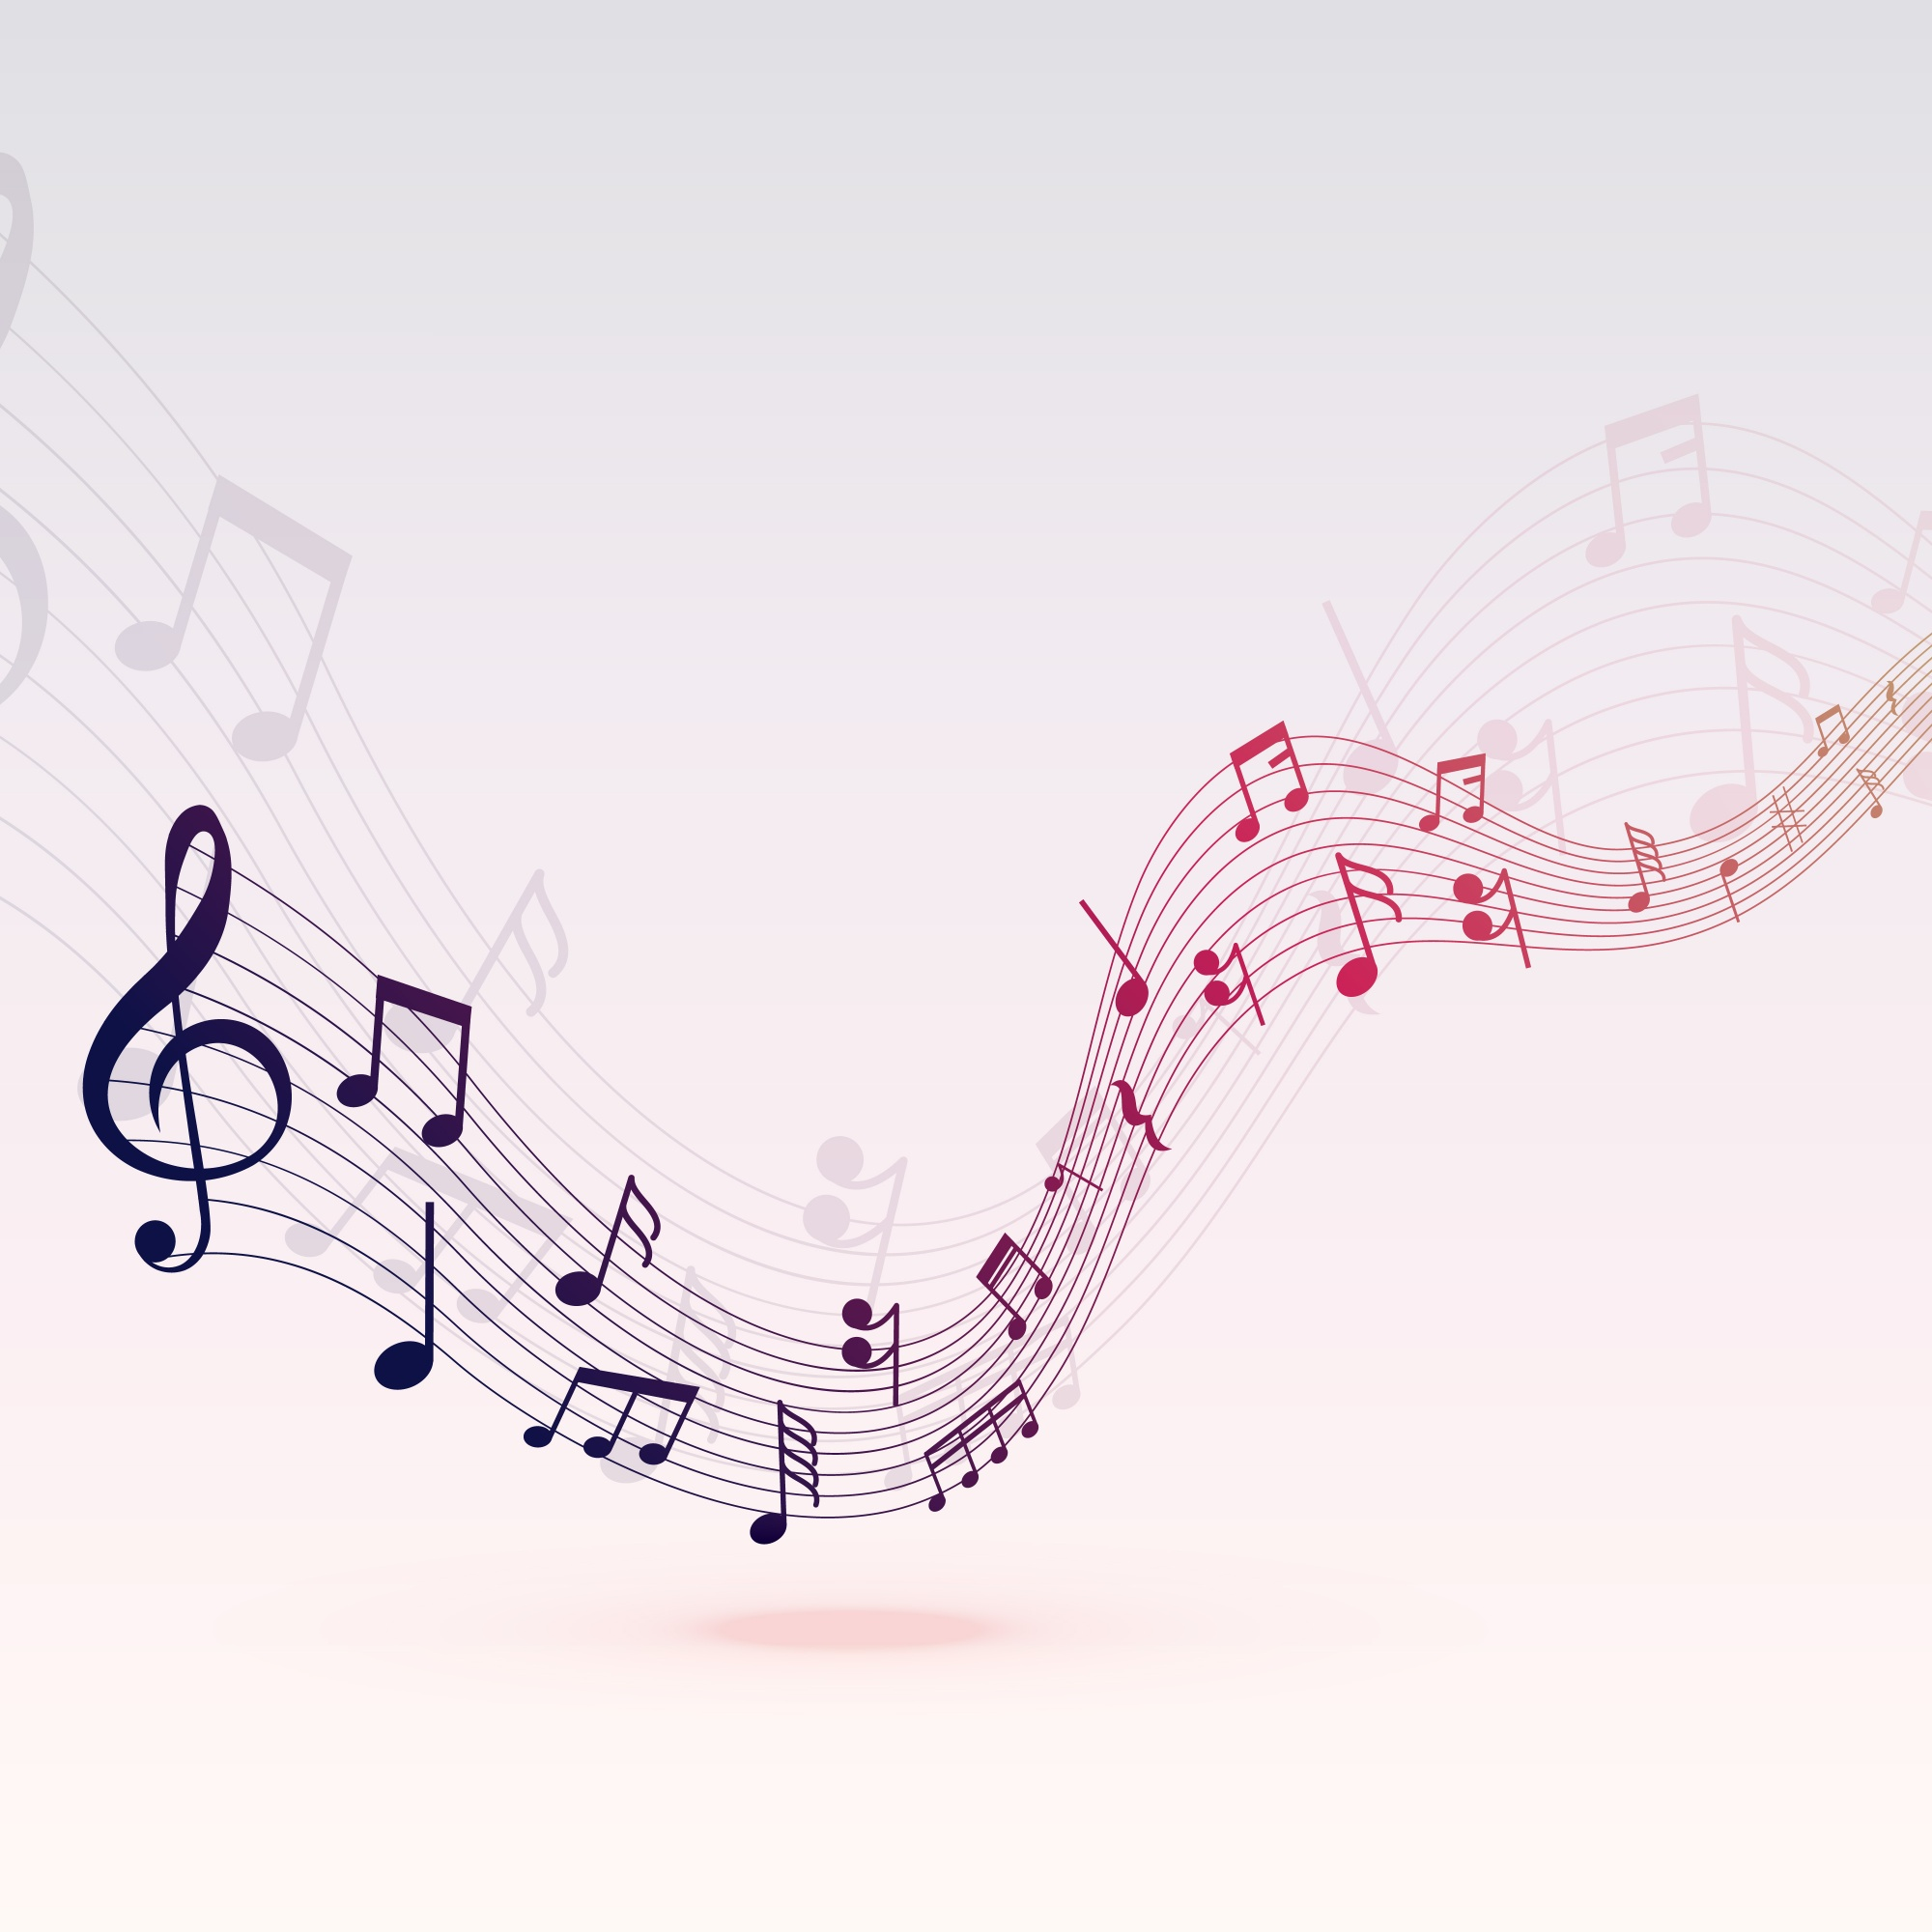 Beautiful musical notes wave background design